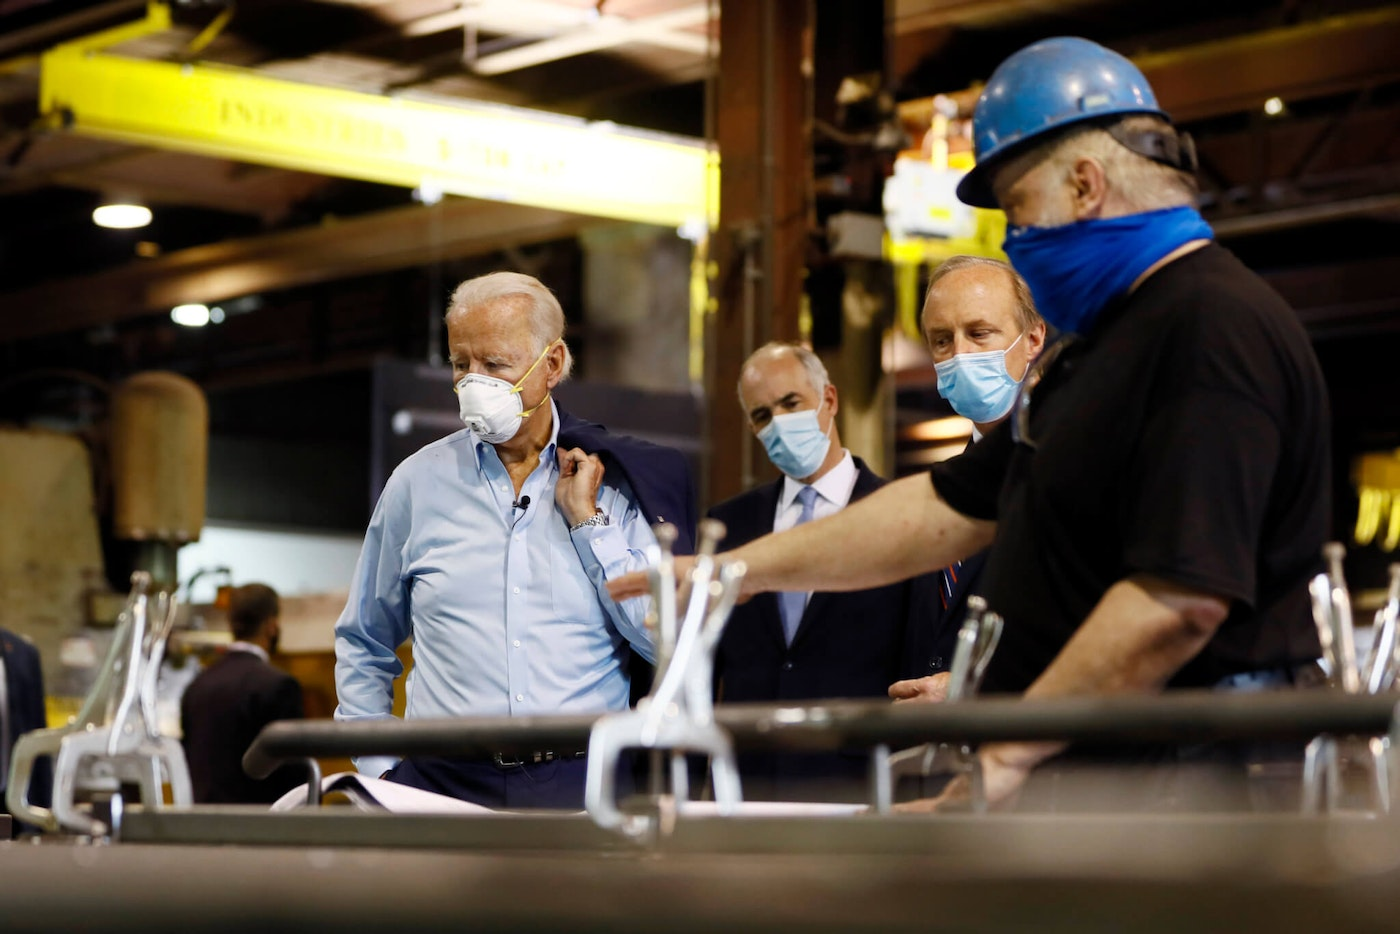 Democratic presidential candidate, former Vice President Joe Biden, from left, Sen. Bob Casey, D-Pa., and McGregor Industries owner Bob McGregor listen to First Class Fitter Michael Phillips during a tour of the metal fabricating facility, Thursday, July 9, 2020, in Dunmore, Pa. (AP Photo/Matt Slocum)